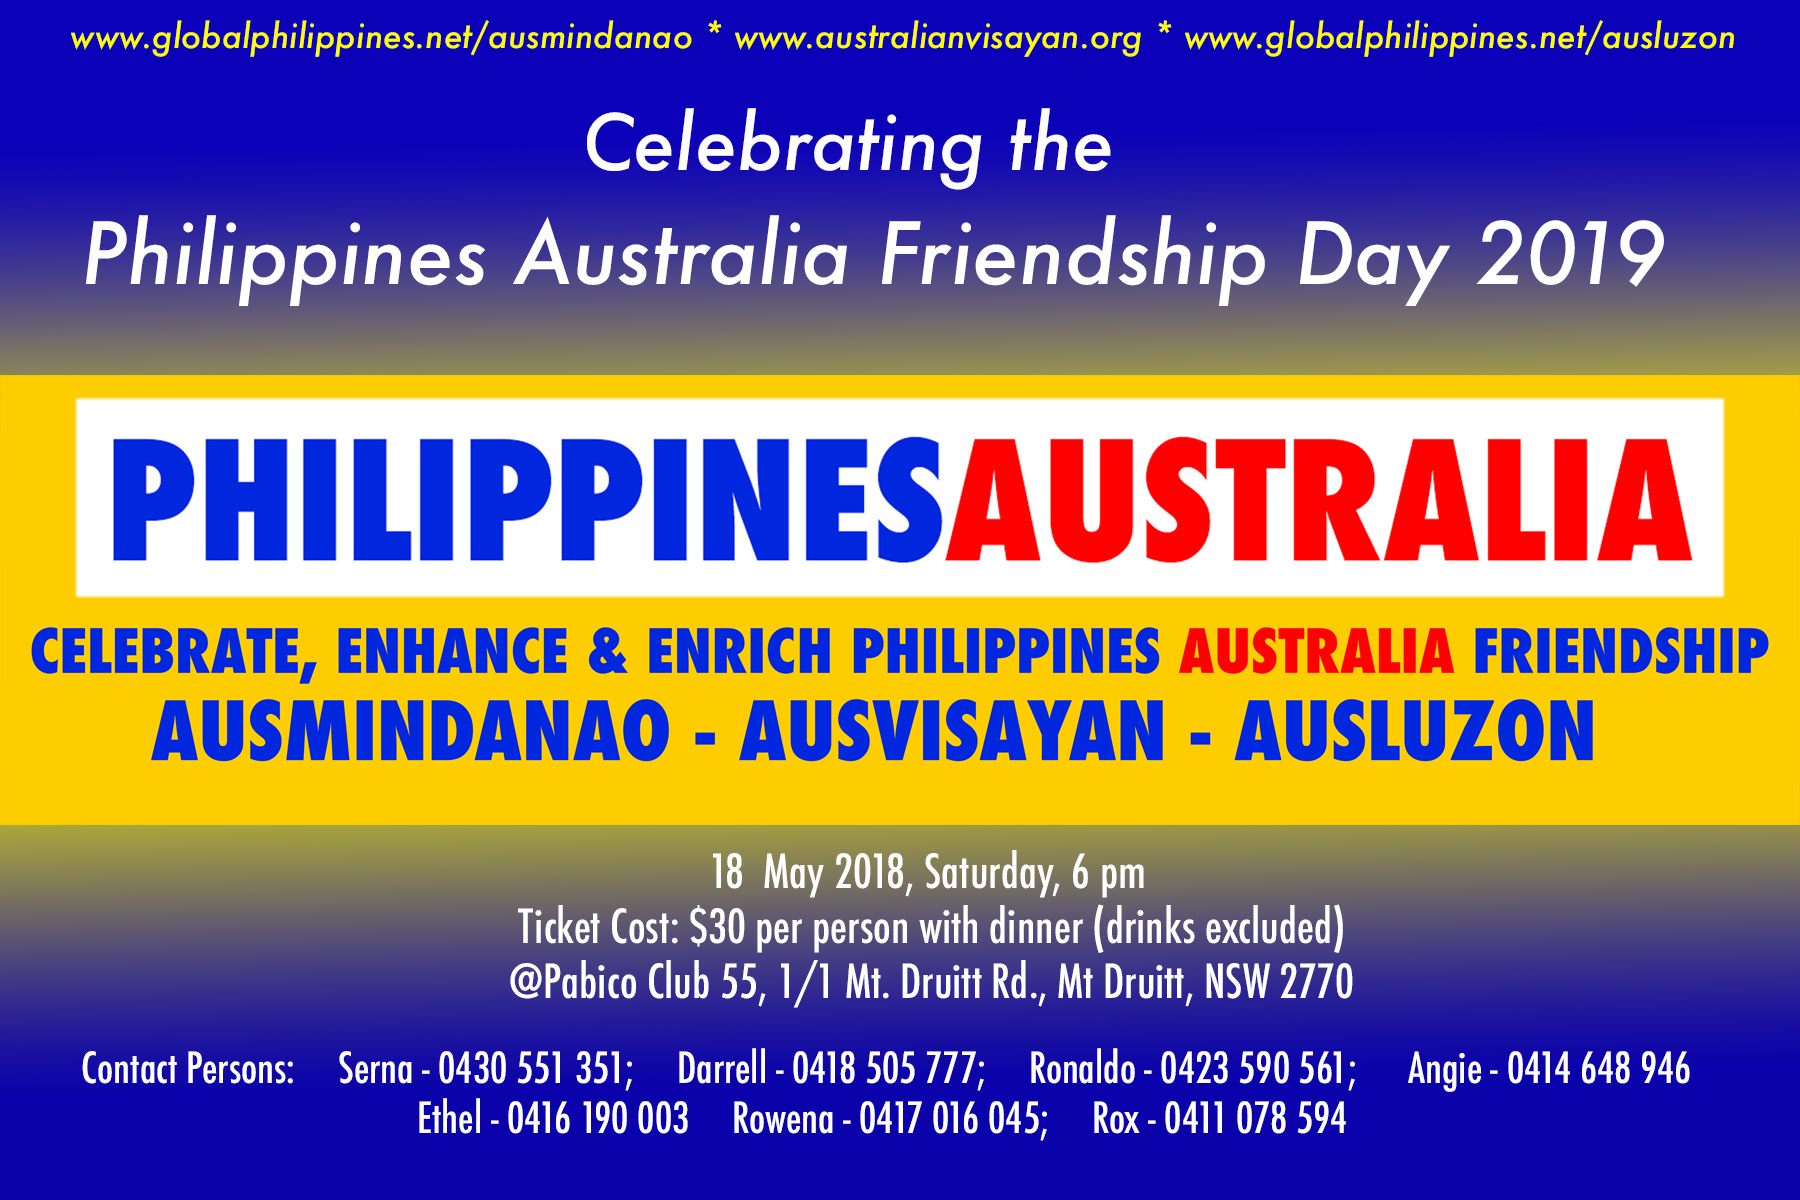 2019 Philippines Australia Friendship Day